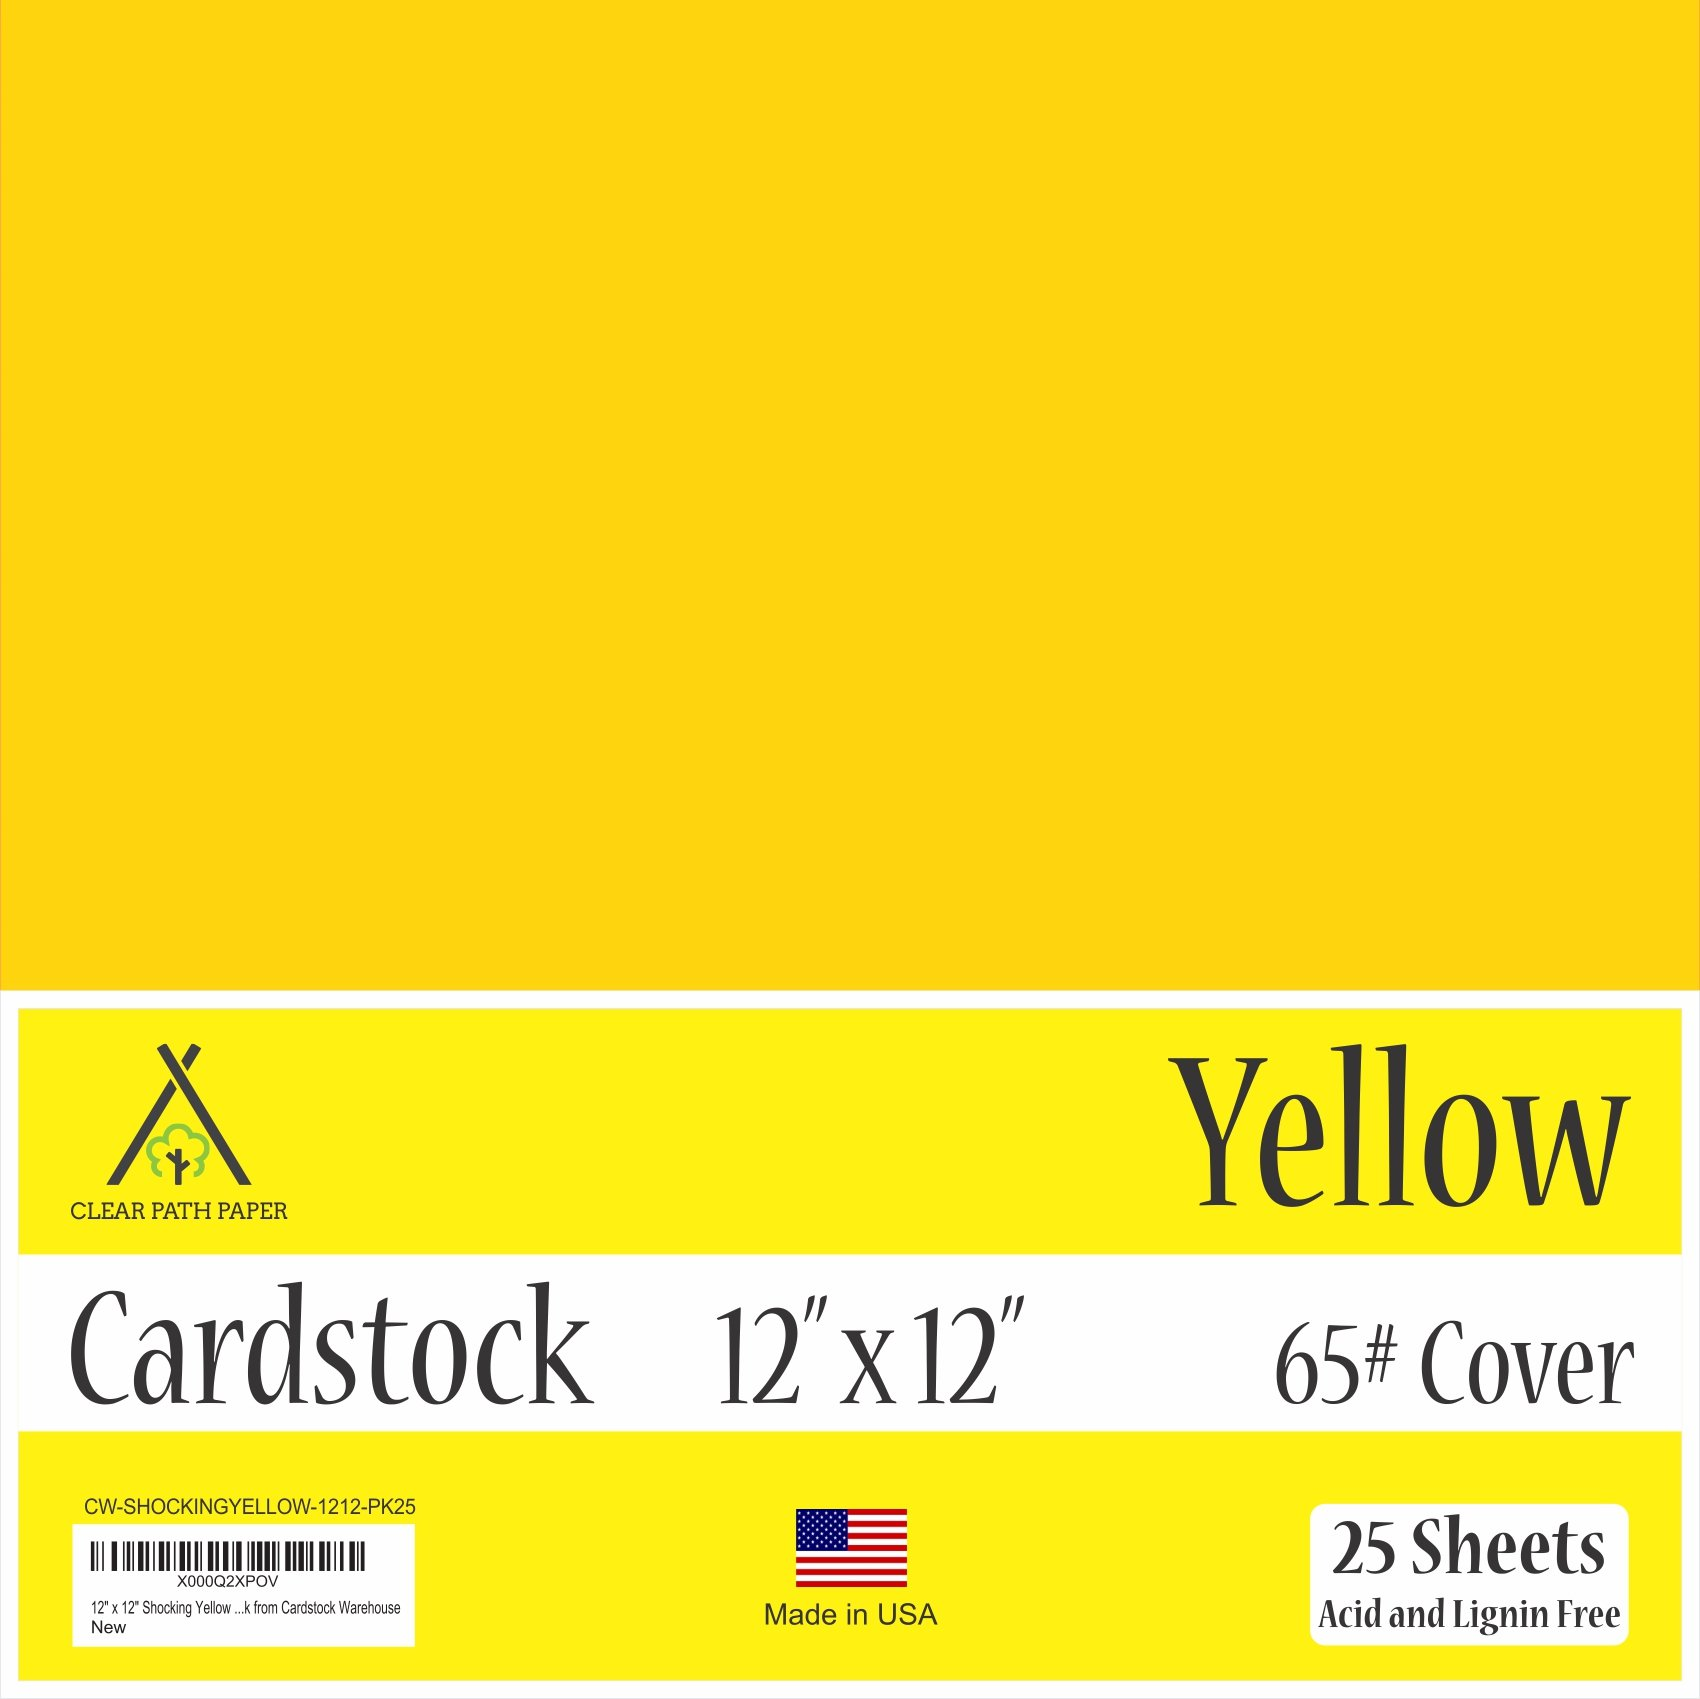 Yellow Cardstock - 12 x 12 inch - 65Lb Cover - 25 Sheets